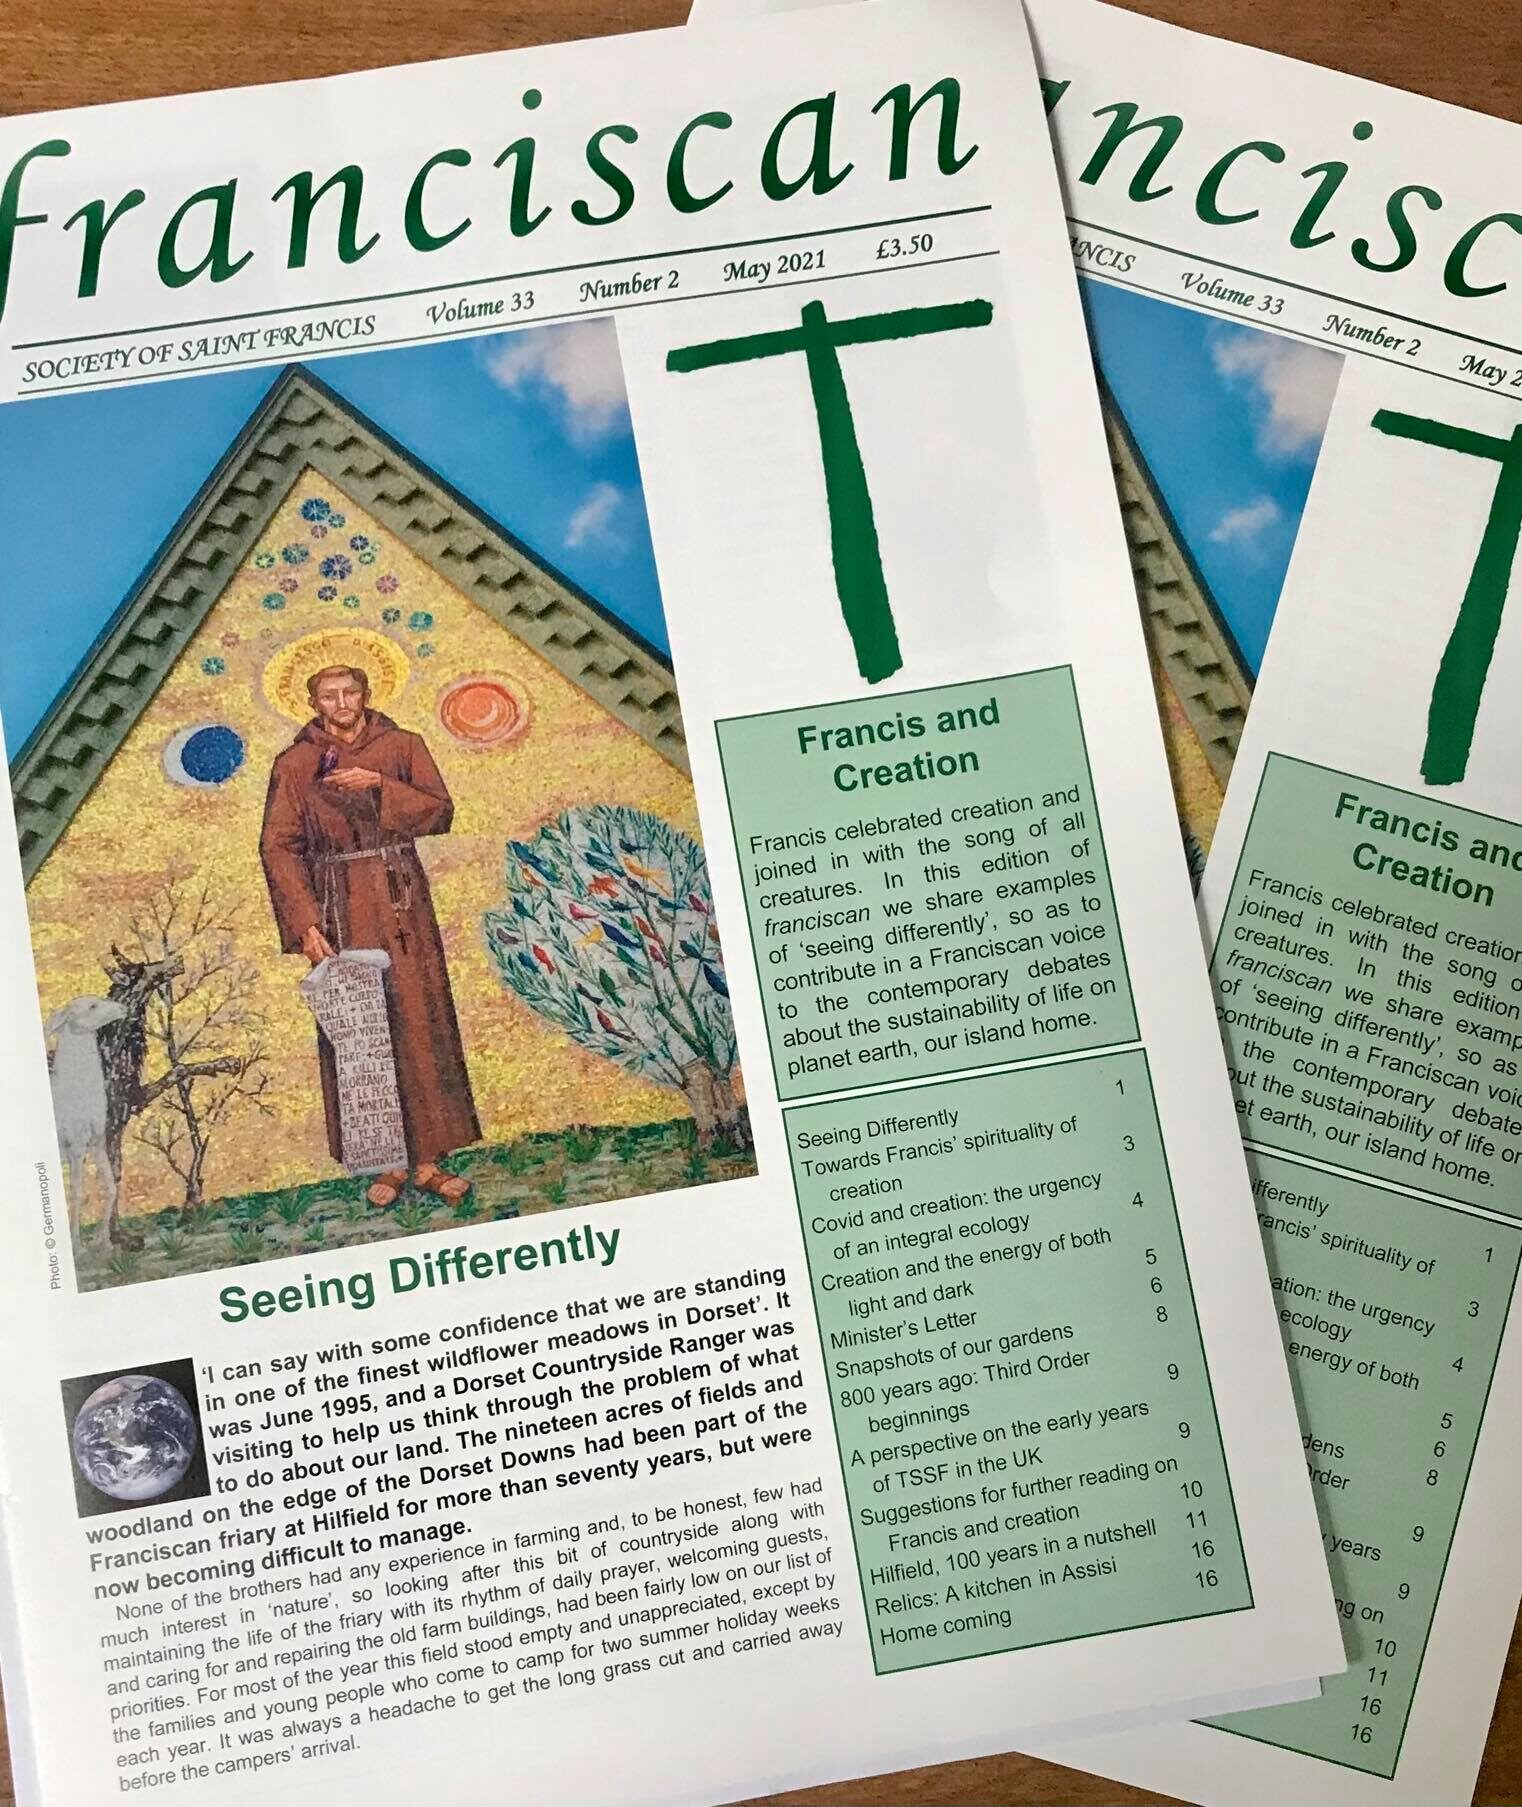 New Issue of Franciscan Magazine Now Available